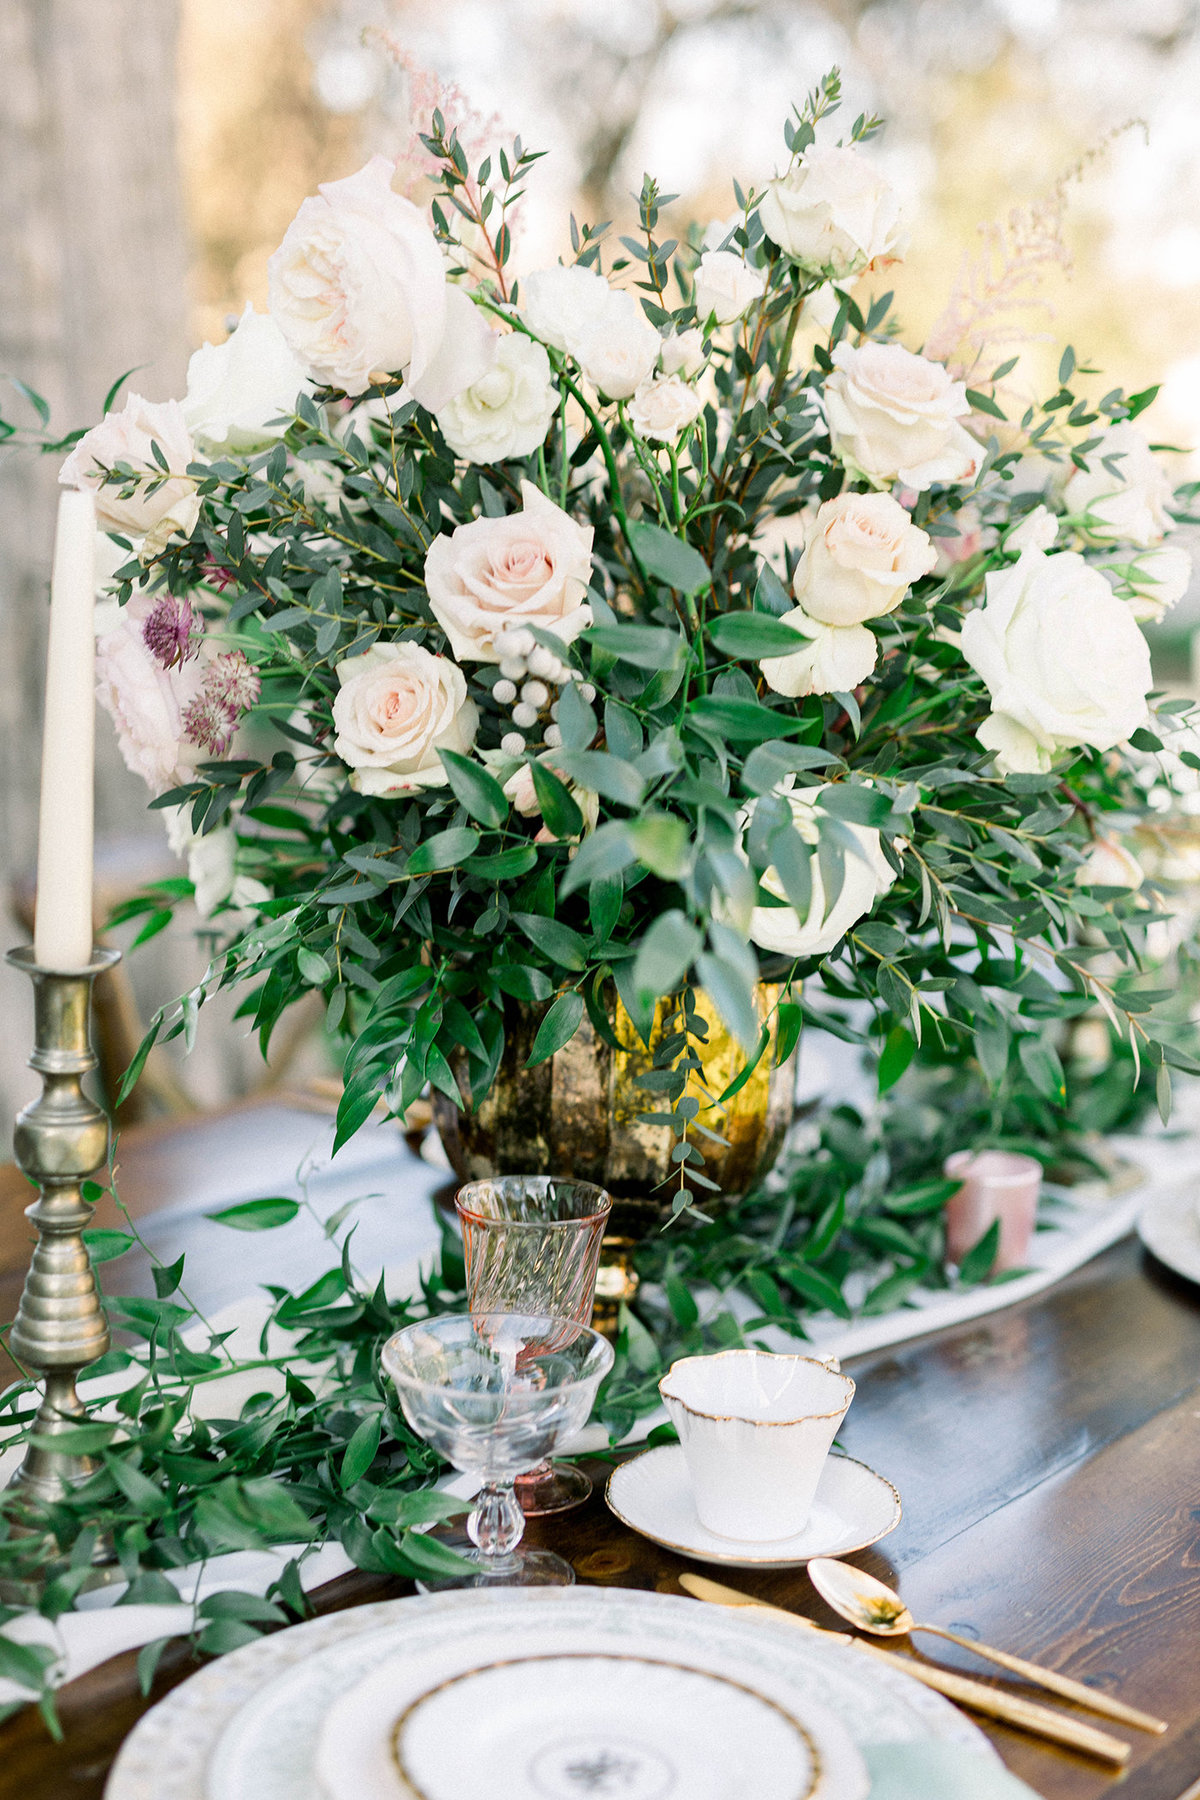 Cedarmont Nashville Editorial - Sarah Sunstrom Photography - Fine Art Wedding Photographer - 32